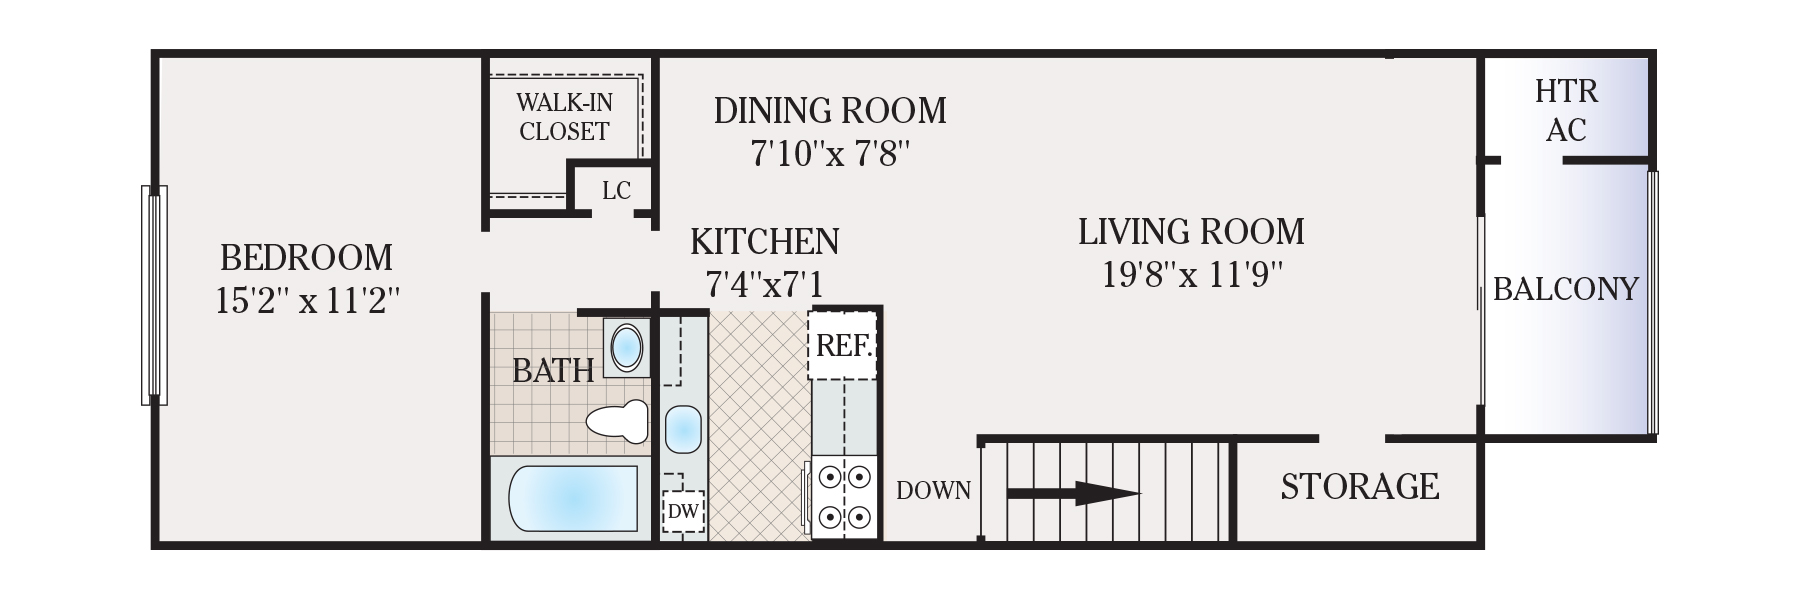 650 Square Feet Apartment Floor Plan